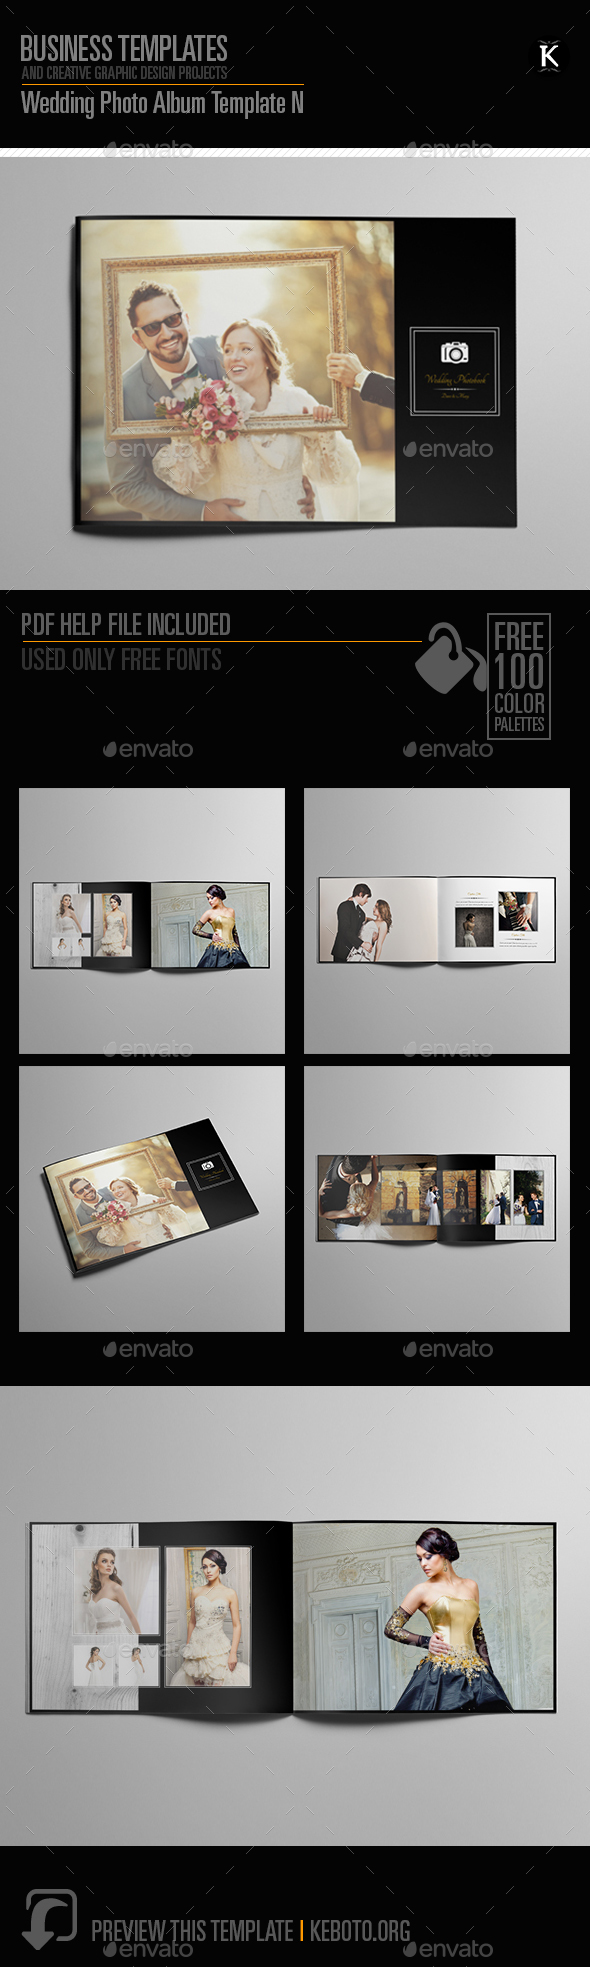 Wedding Photo Album Template By Keboto Graphicriver